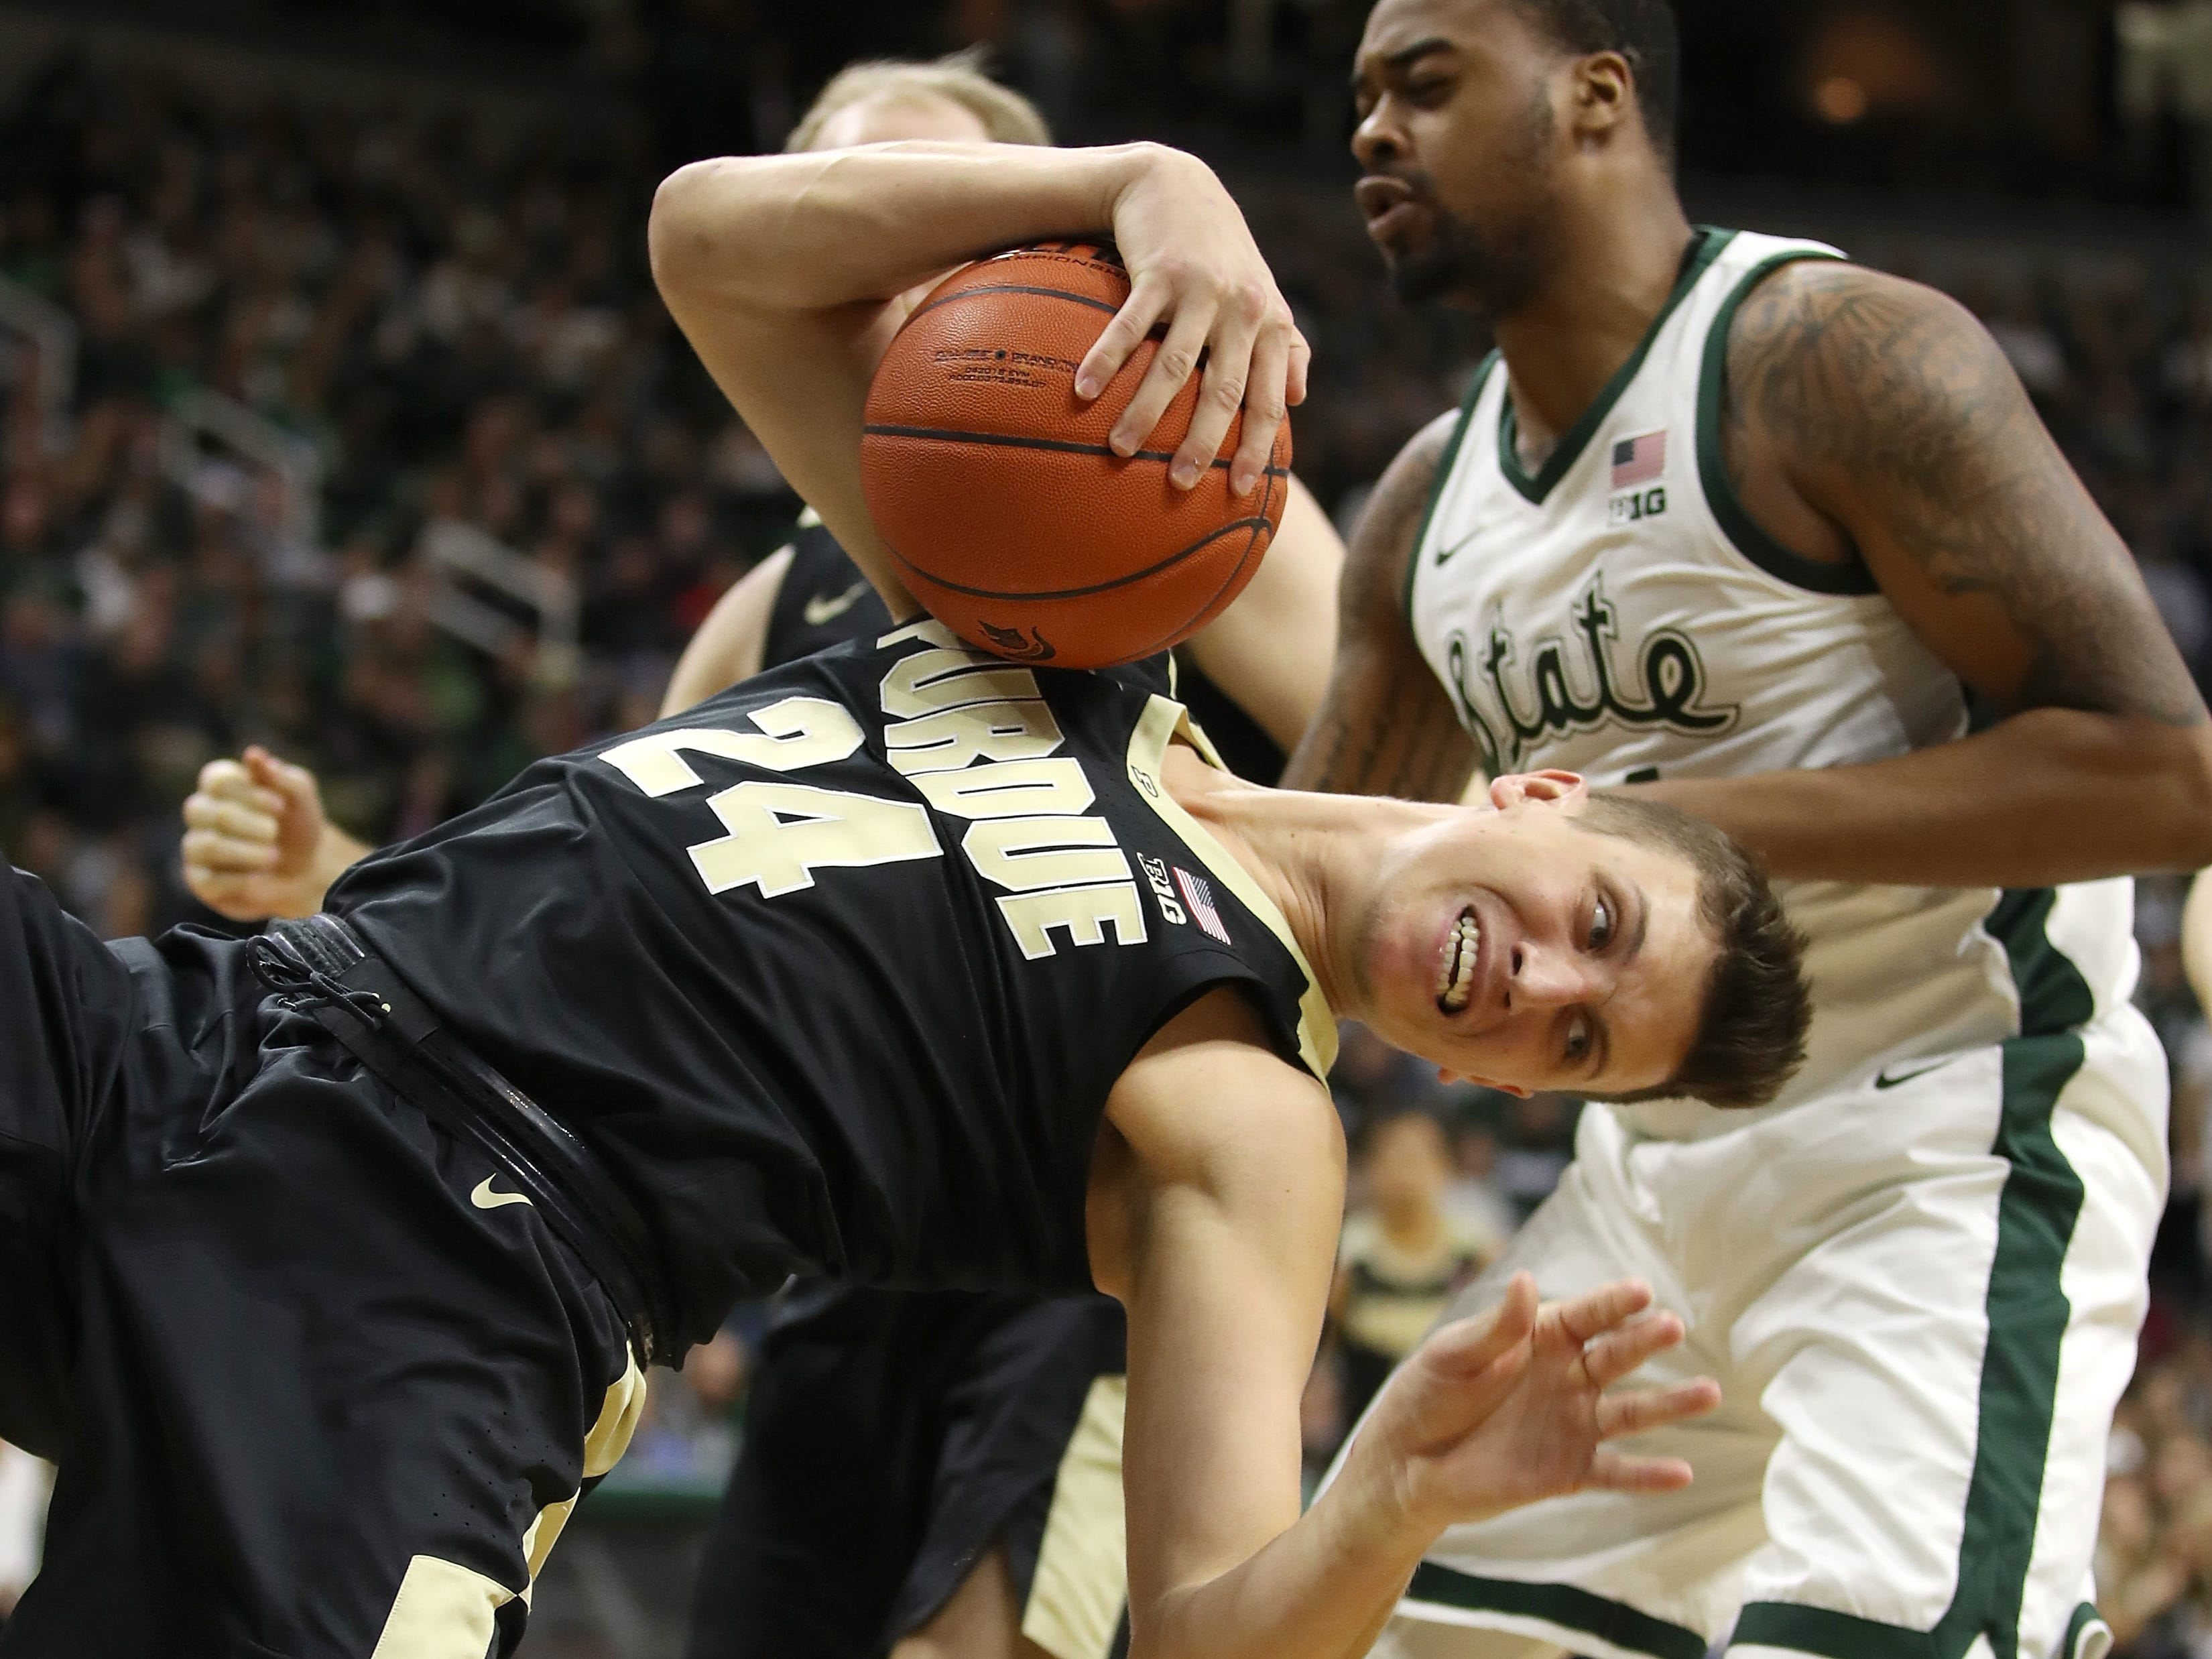 Grady Eifert #24 of the Purdue Boilermakers battles for a first half rebound with Nick Ward #44 of the Michigan State Spartans at Breslin Center on January 08, 2019 in East Lansing, Michigan.